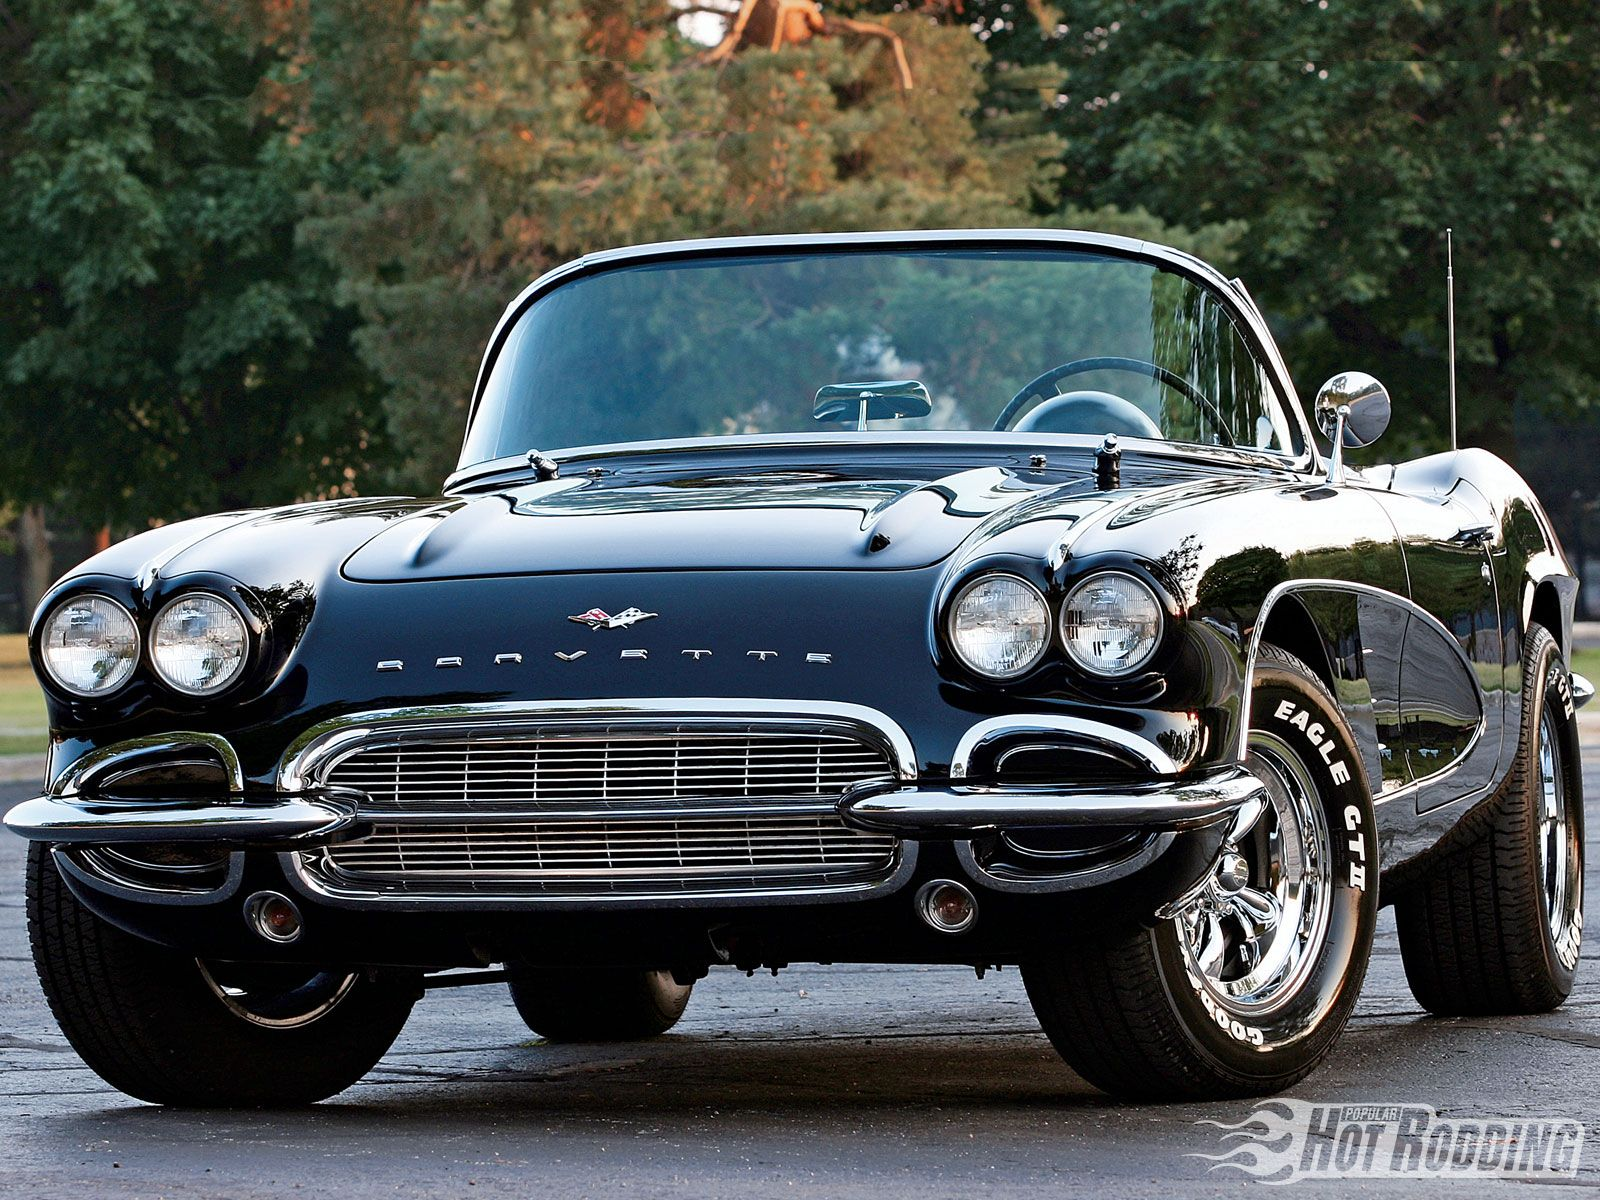 Best 10 1961 corvette ideas on pinterest chevrolet corvette stingray corvettes and chevrolet corvette